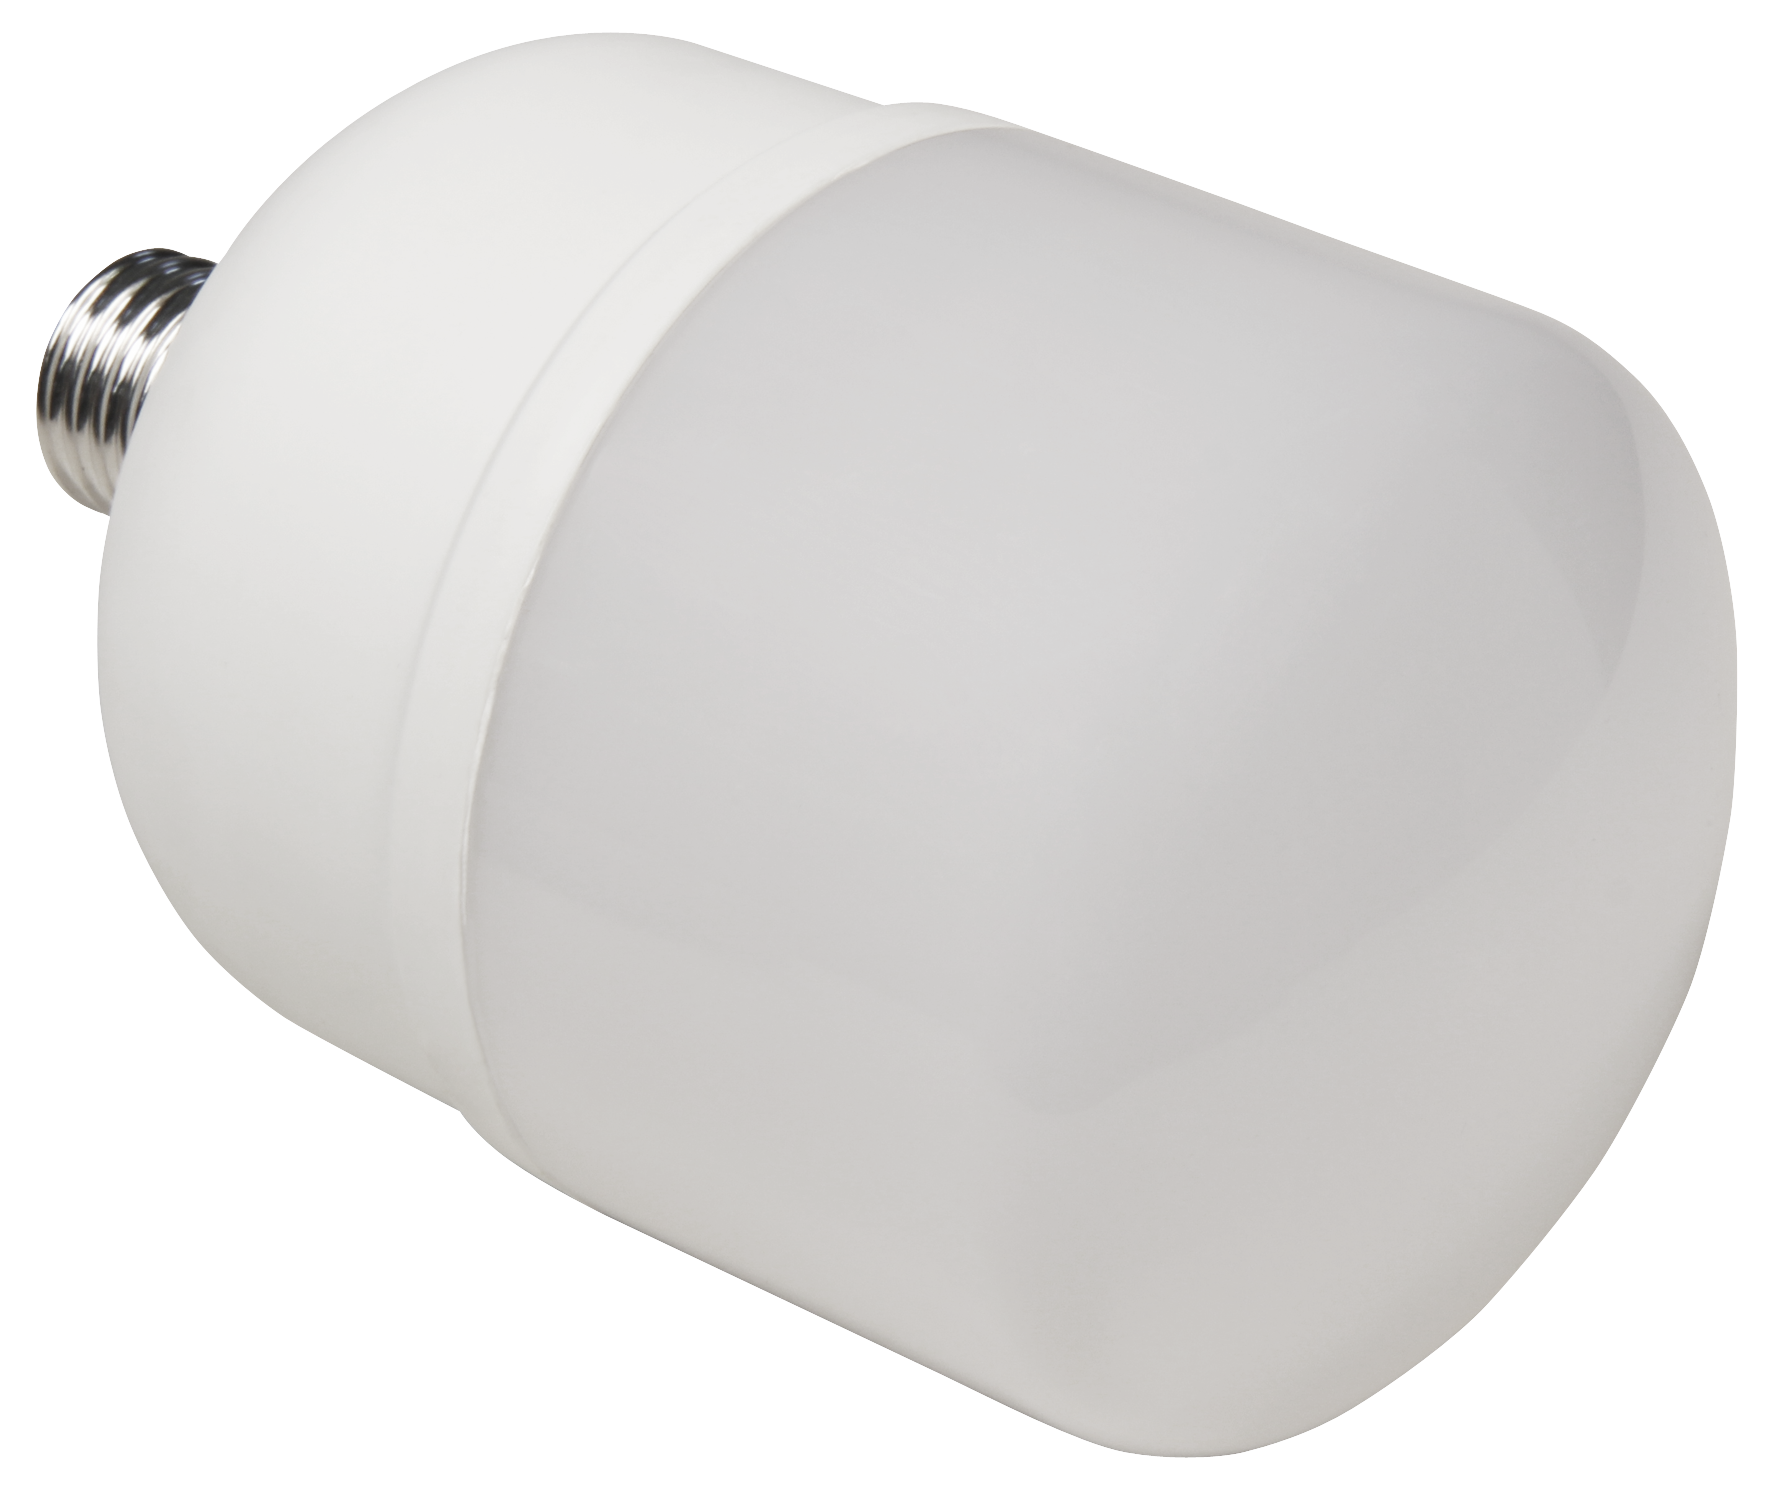 LED Lampe McShine ''BIG30'' E27, 30W, 2800lm, 100x191mm, neutralweiß